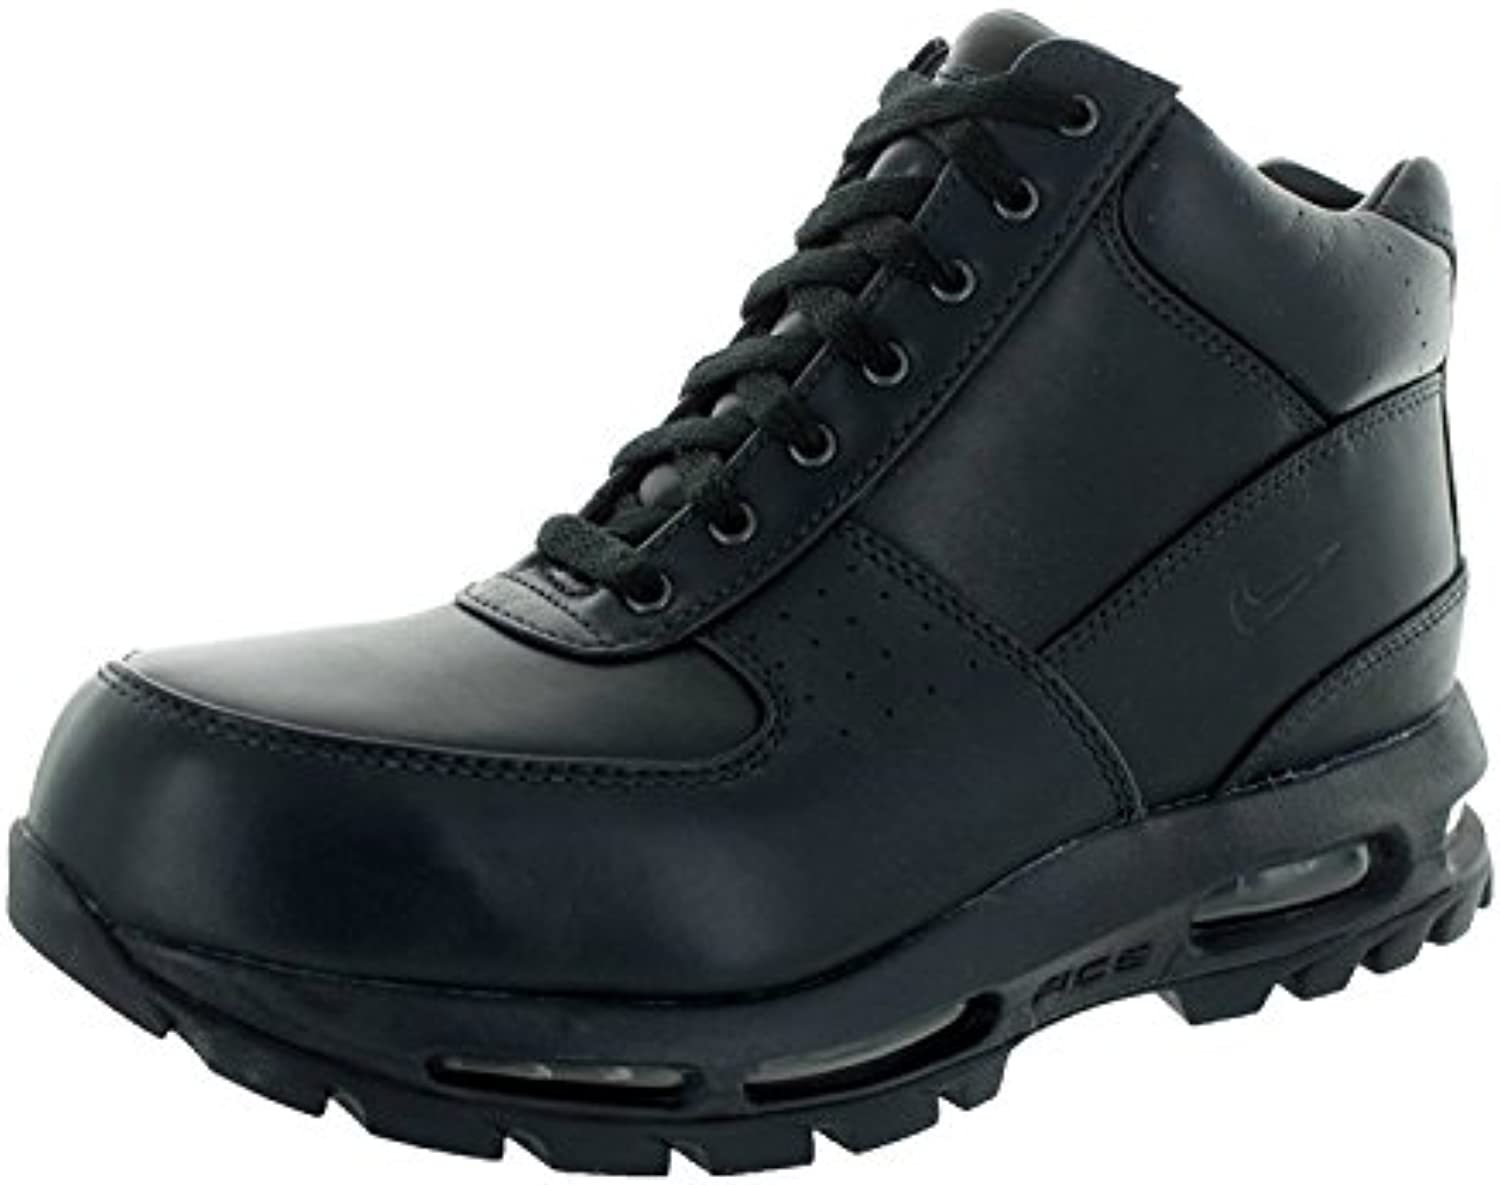 Nike Men's Air Max Goadome Dark Obsidian/Black Boot 10.5 Men US, Dark Obsidian/Black, 44.5 D(M) EU/9.5 D(M) UK